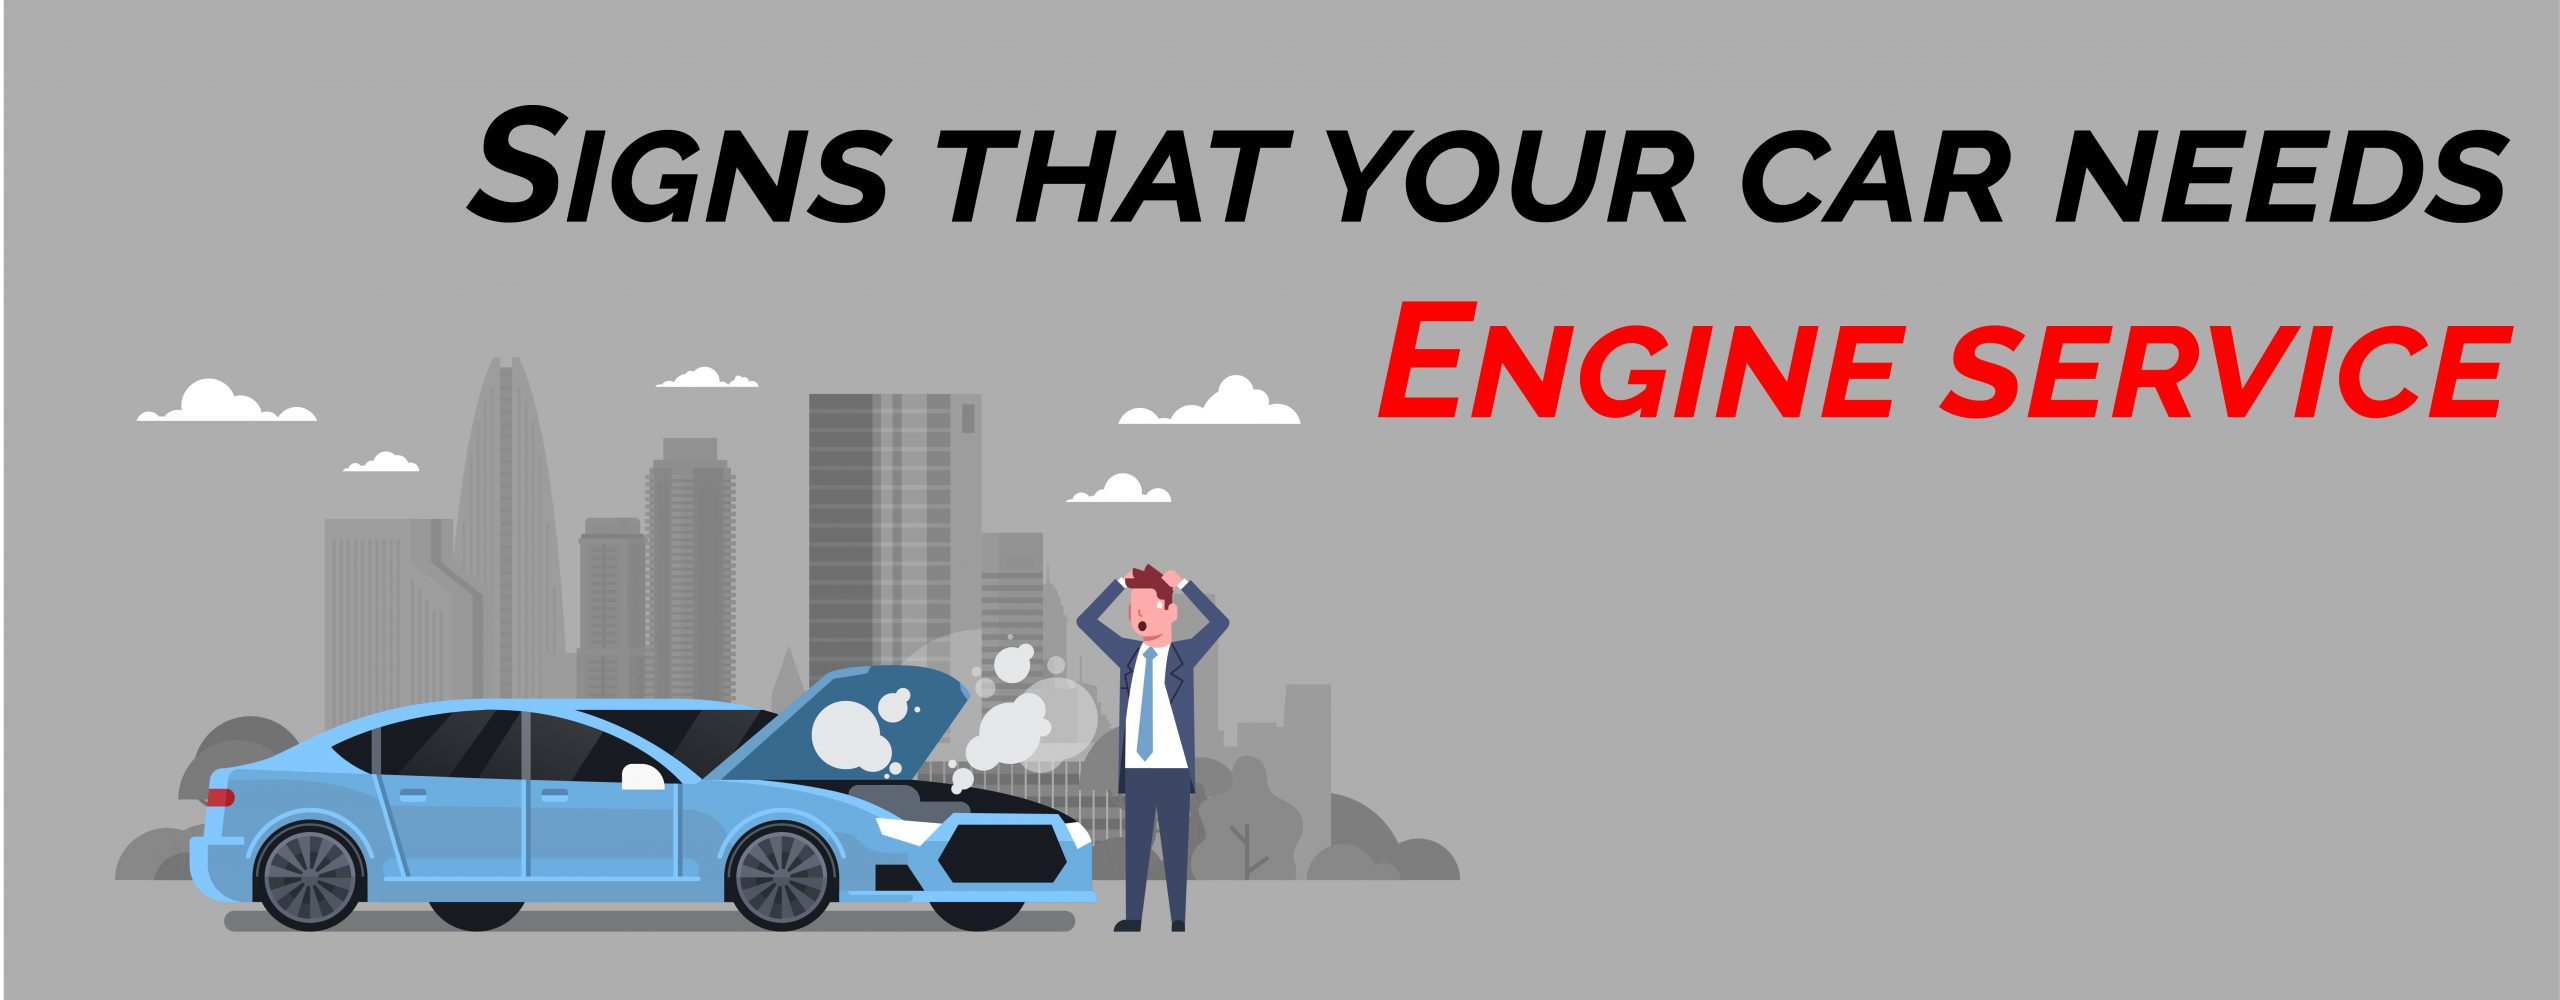 Signs that your car needs engine service